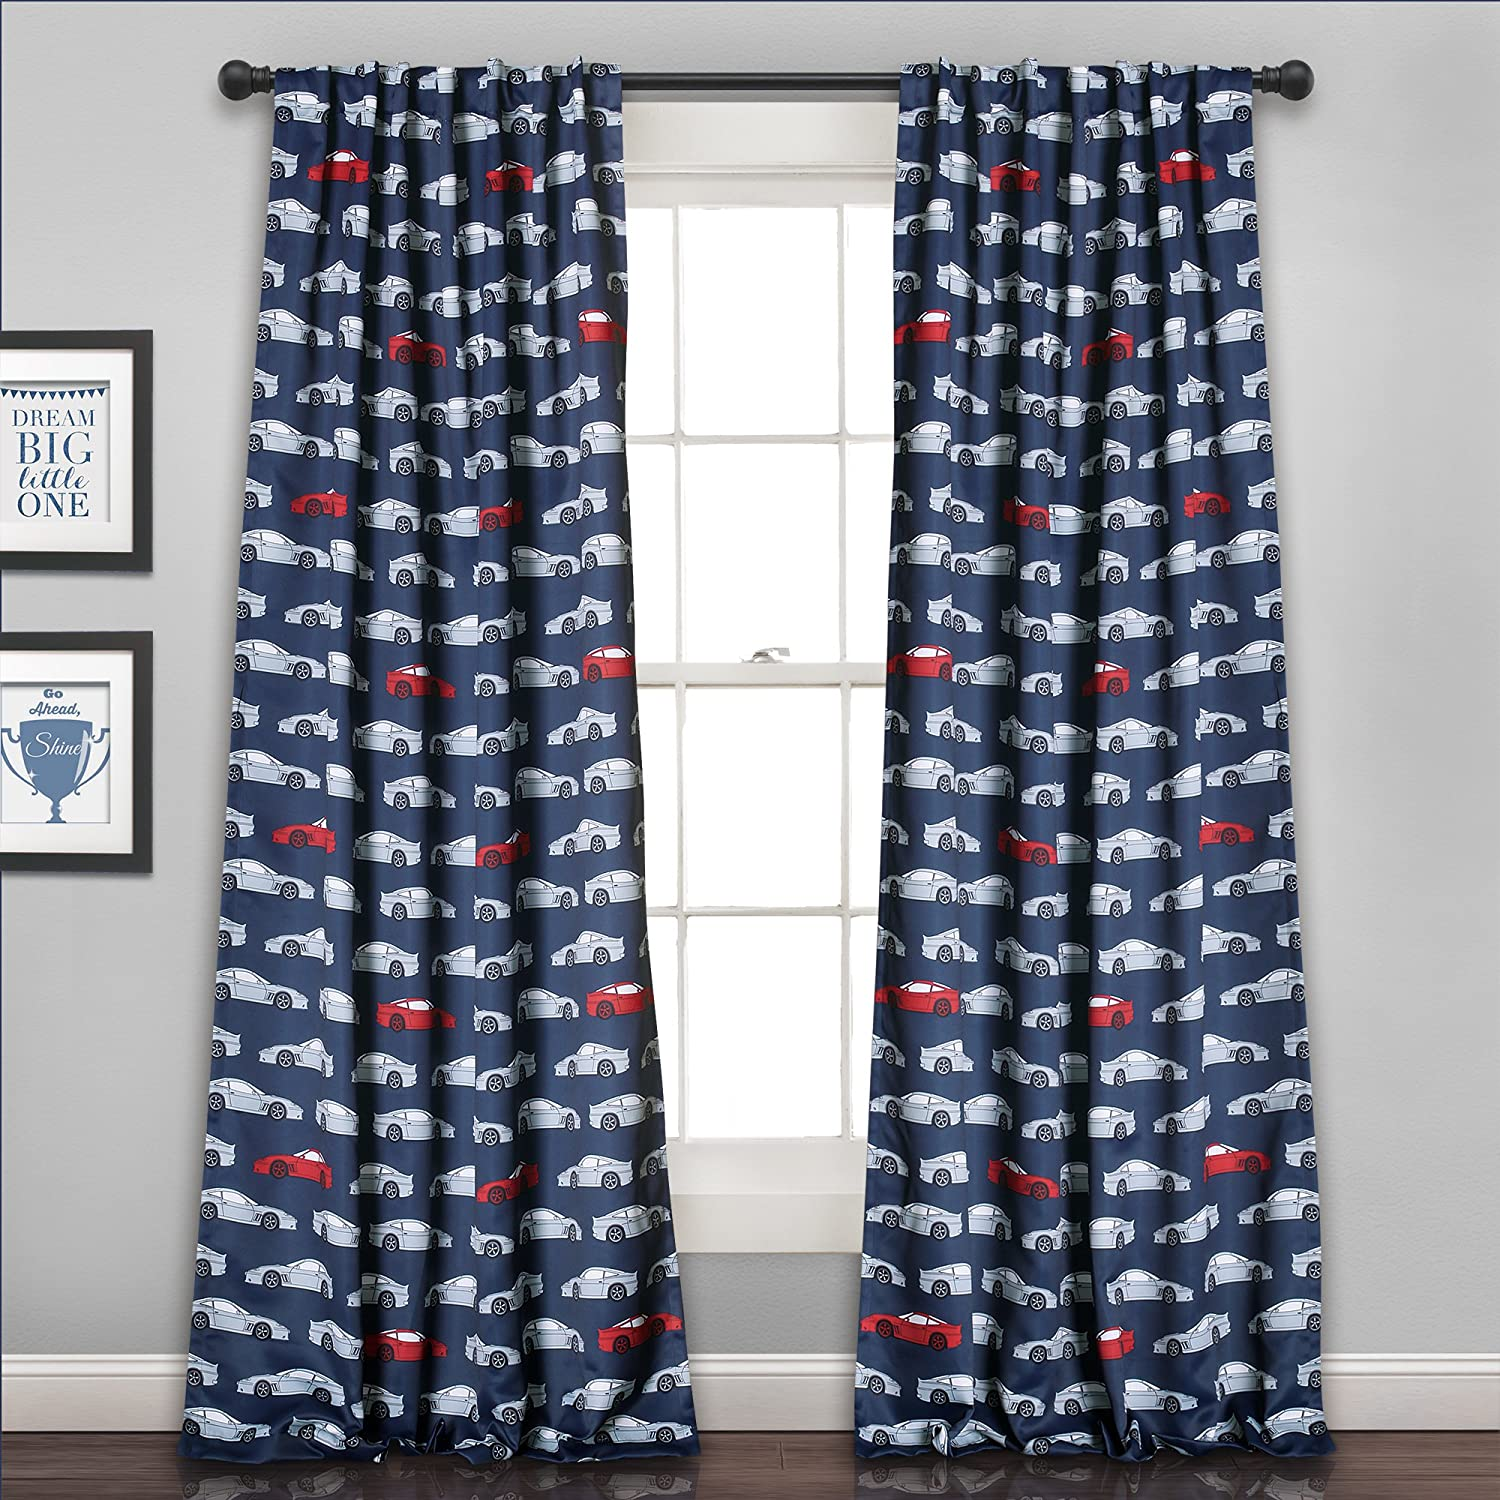 Lush Decor 16T000556 Race Cars Room Darkening Window Curtain Panel Set, 84 x 52, Navy/Red 84 x 52 Triangle Home Fashions